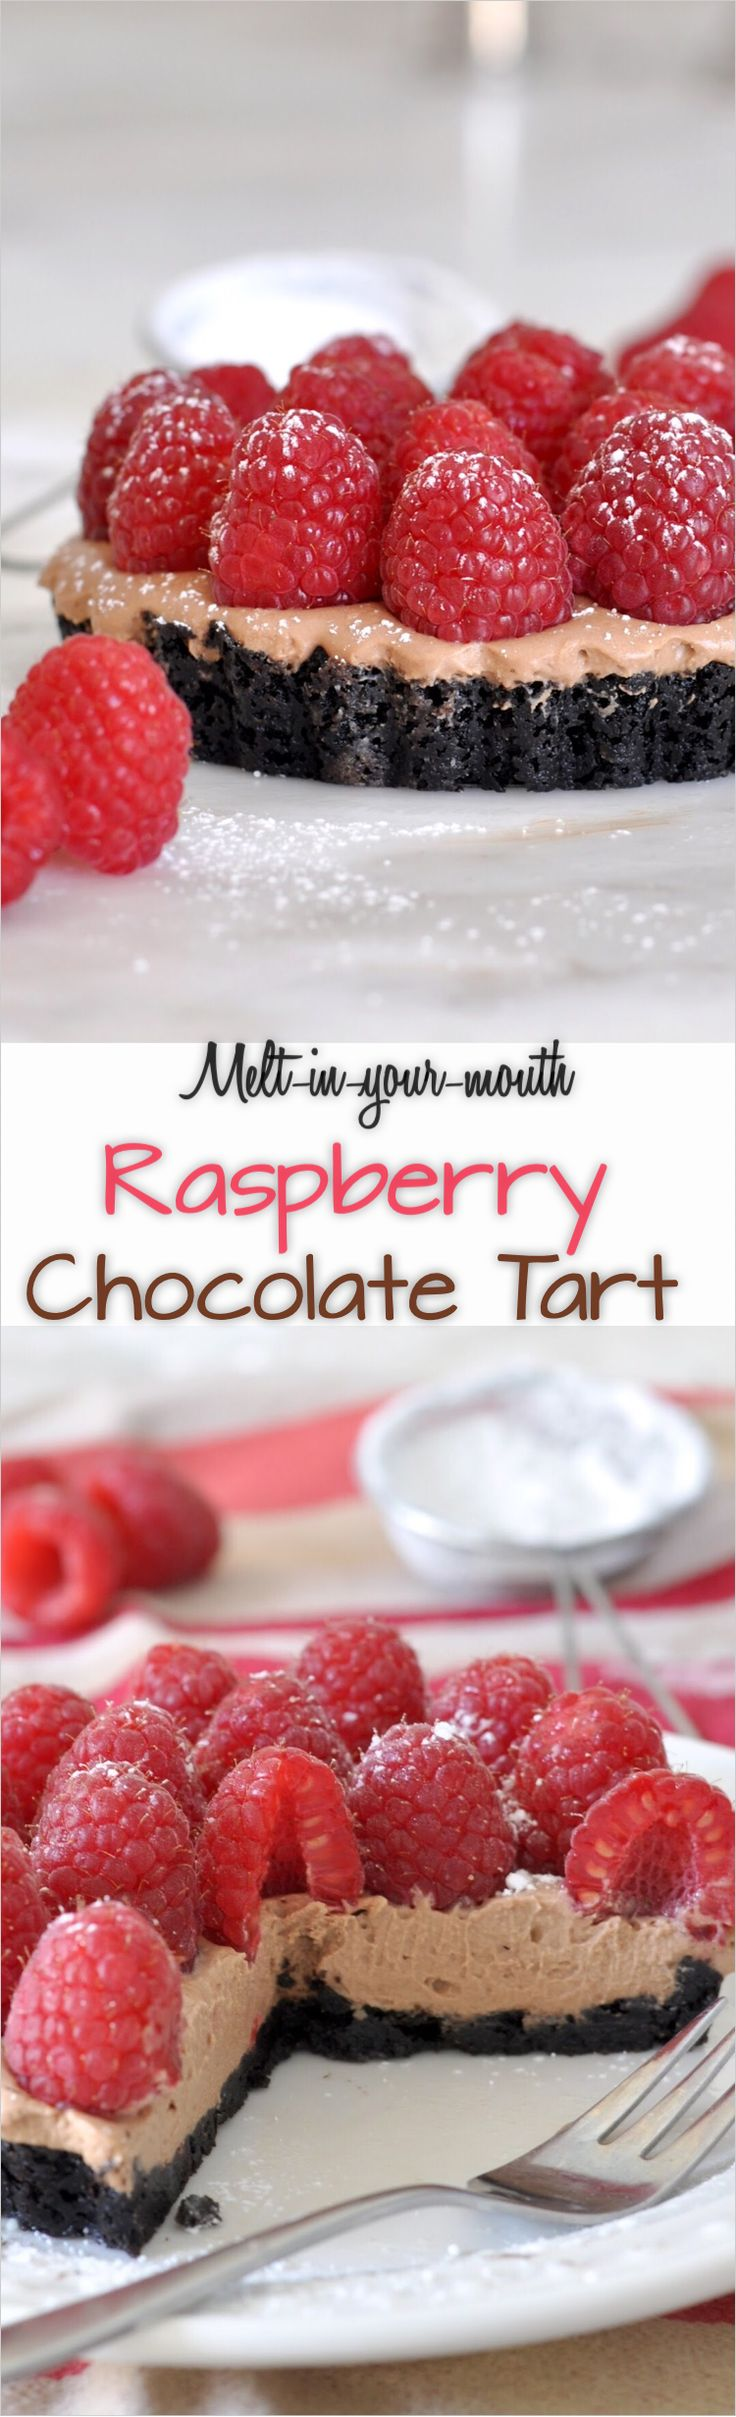 Elegant and easy to make double-chocolate tarts, topped with fresh and healthy raspberries.